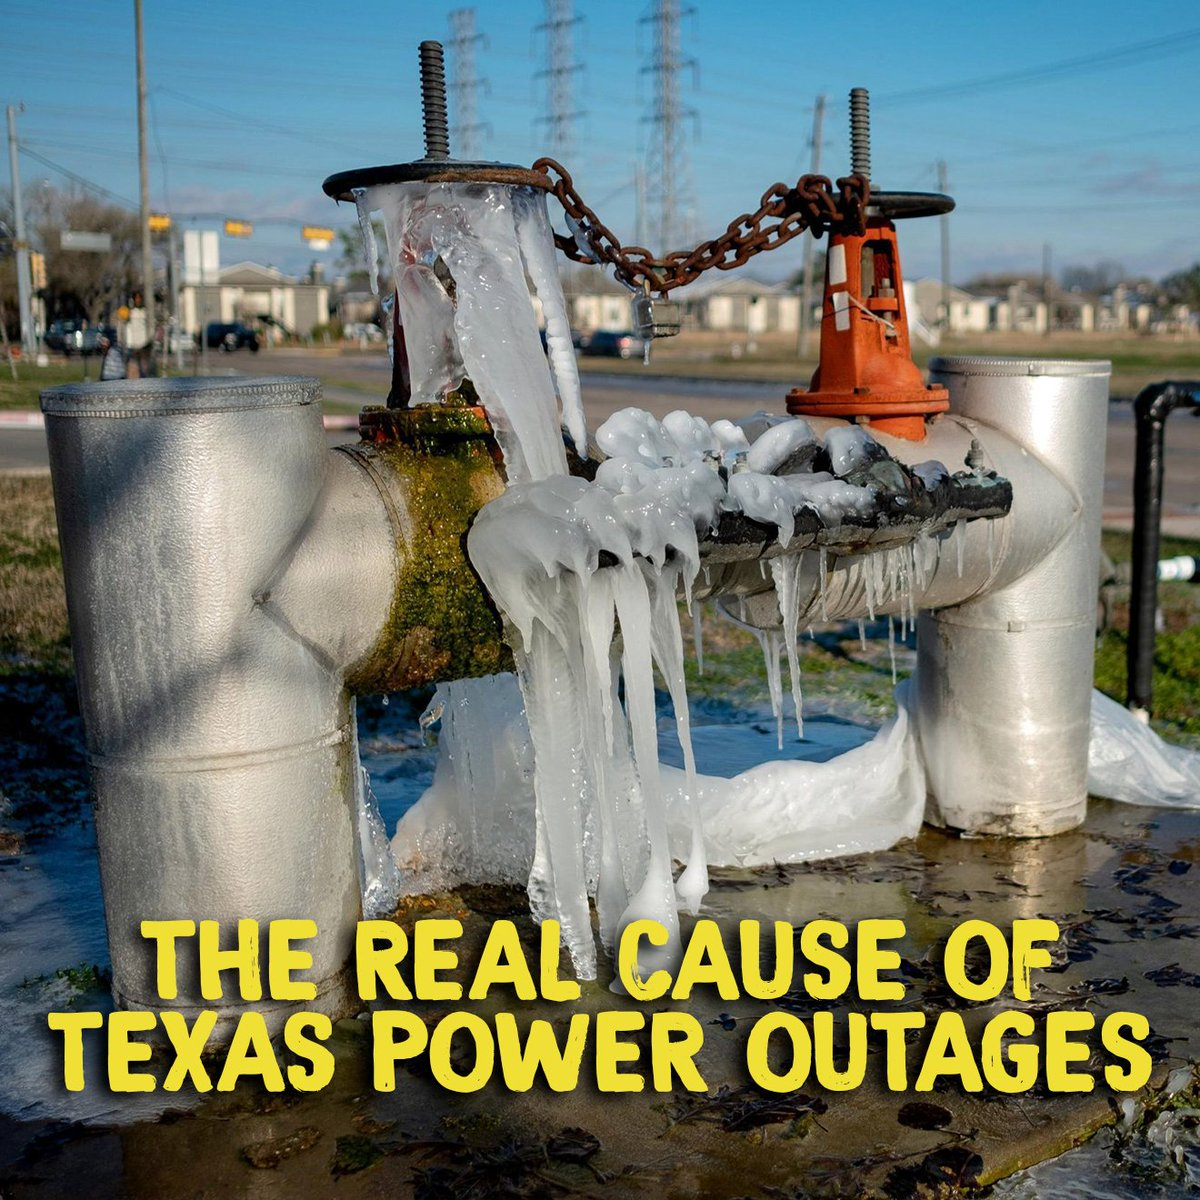 While Texans freeze, Governor Abbott is spouting lies on Fox News about the Green New Deal — which hasn't even been implemented yet.  Here's the truth: Texas' energy infrastructure isn't prepared for climate change. The goal of the Green New Deal is to make sure we are prepared.